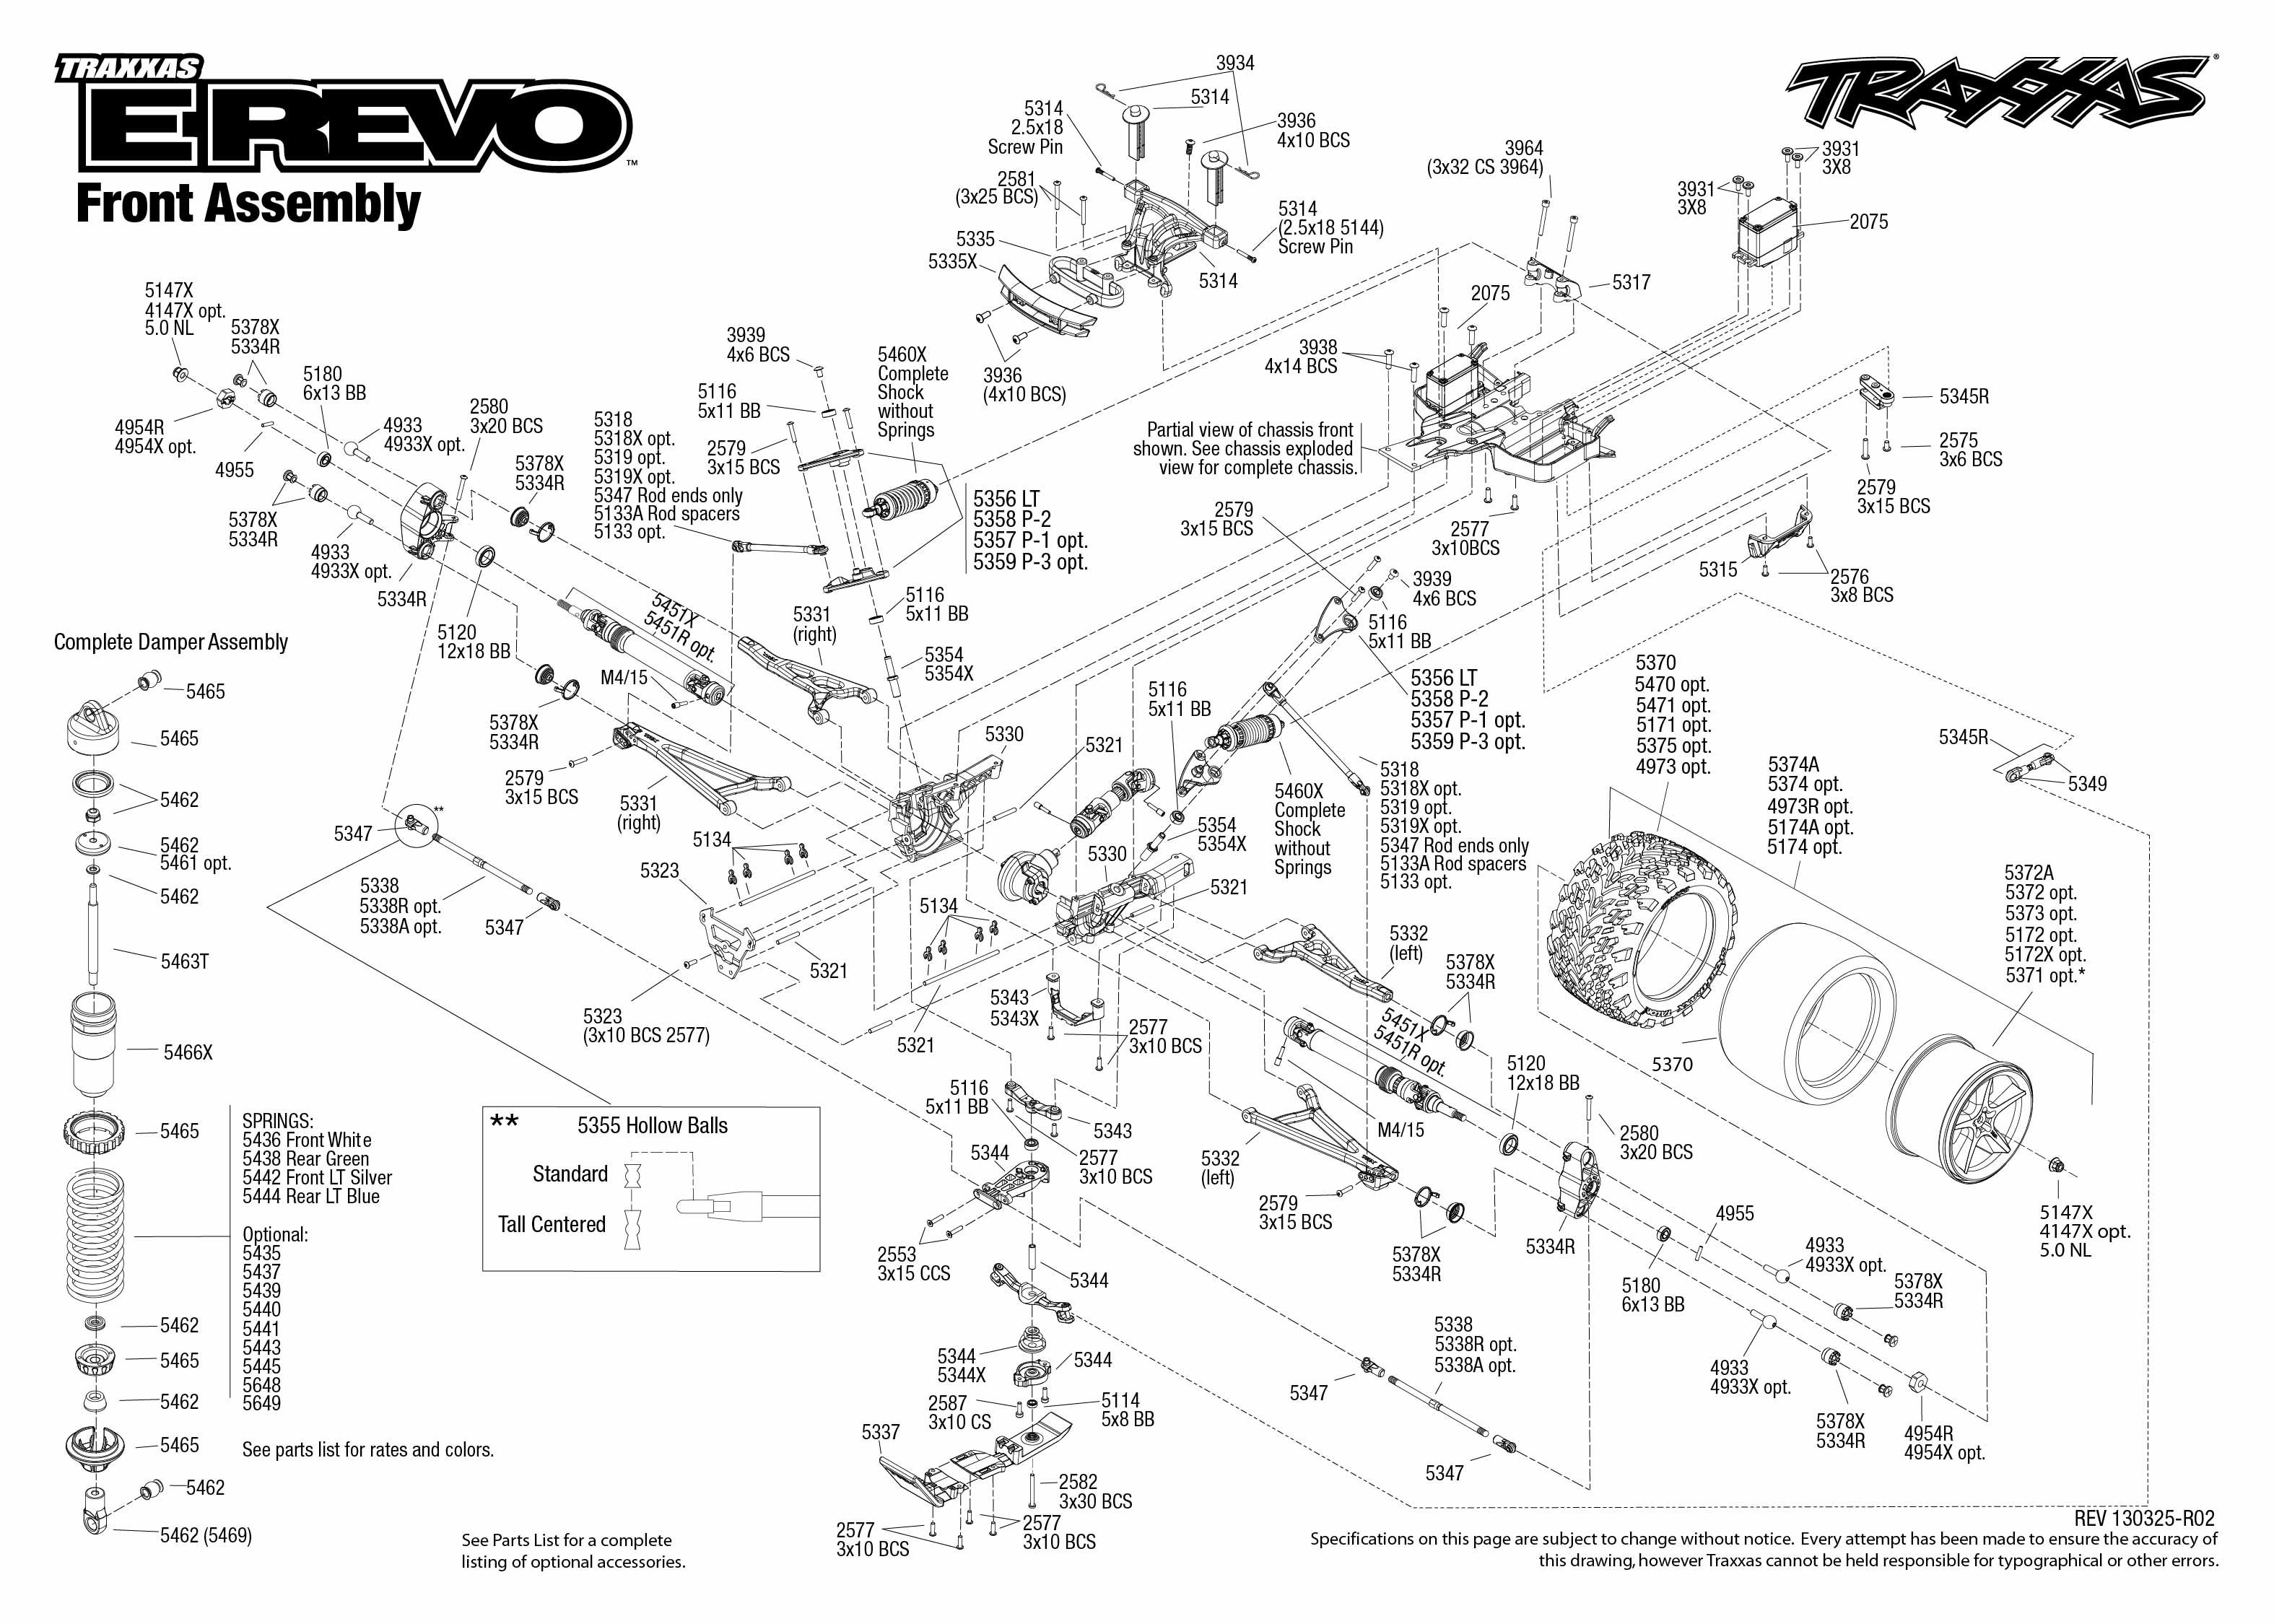 Revo 3 Diagram Pdf Electrical Wiring Diagrams Toyota Traxxas Ez Start Rustler Attractive